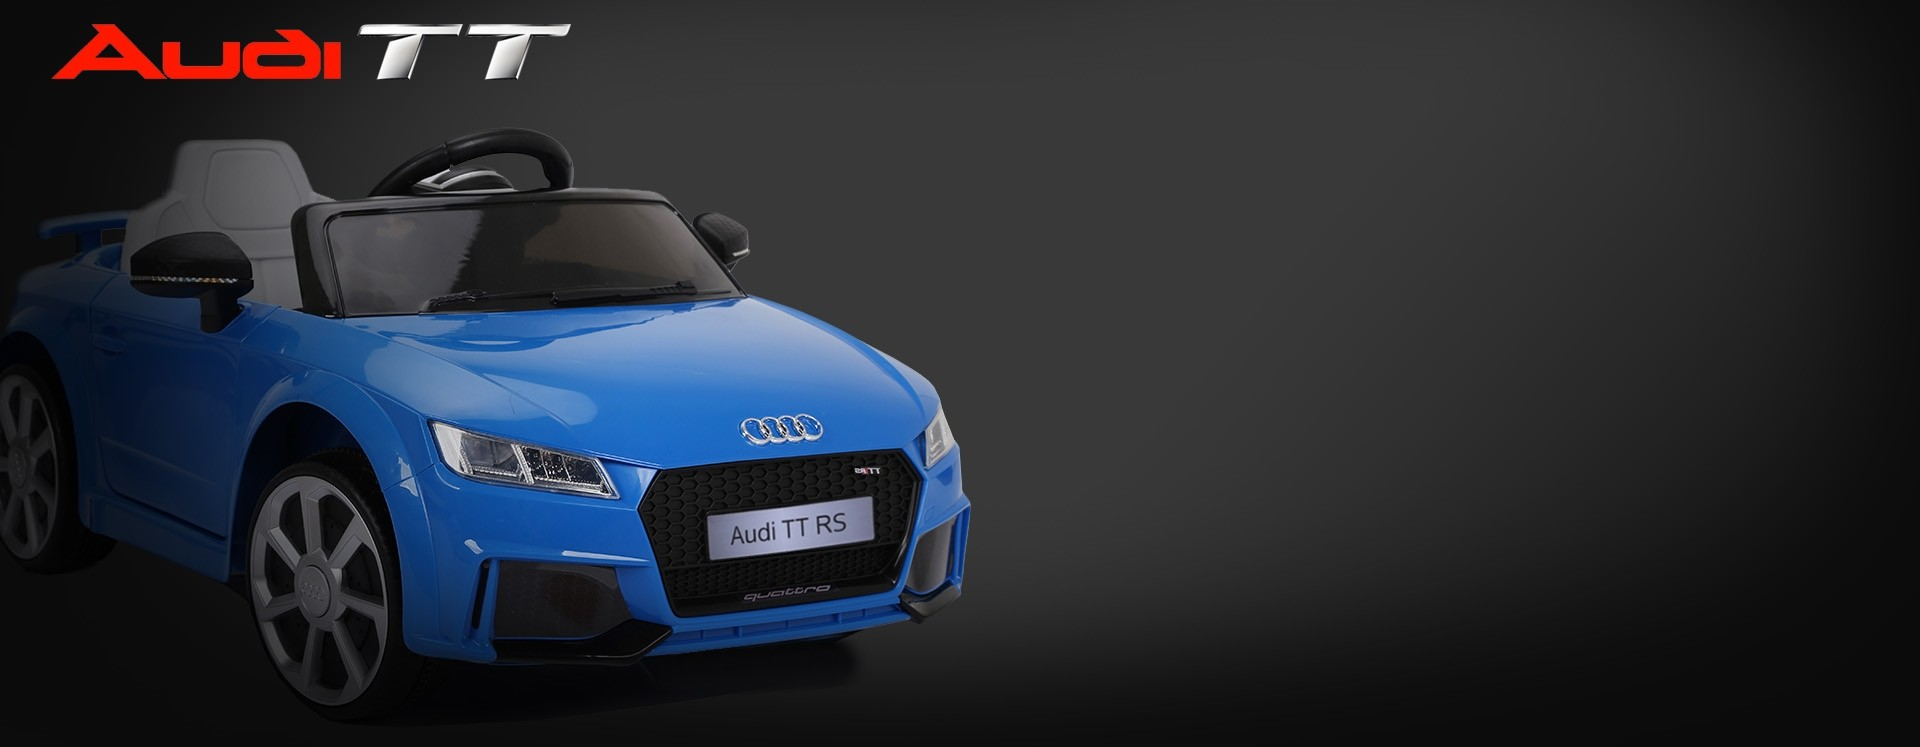 Xtreme 12v Official Licensed Audi TT RS Ride on Car in Blue